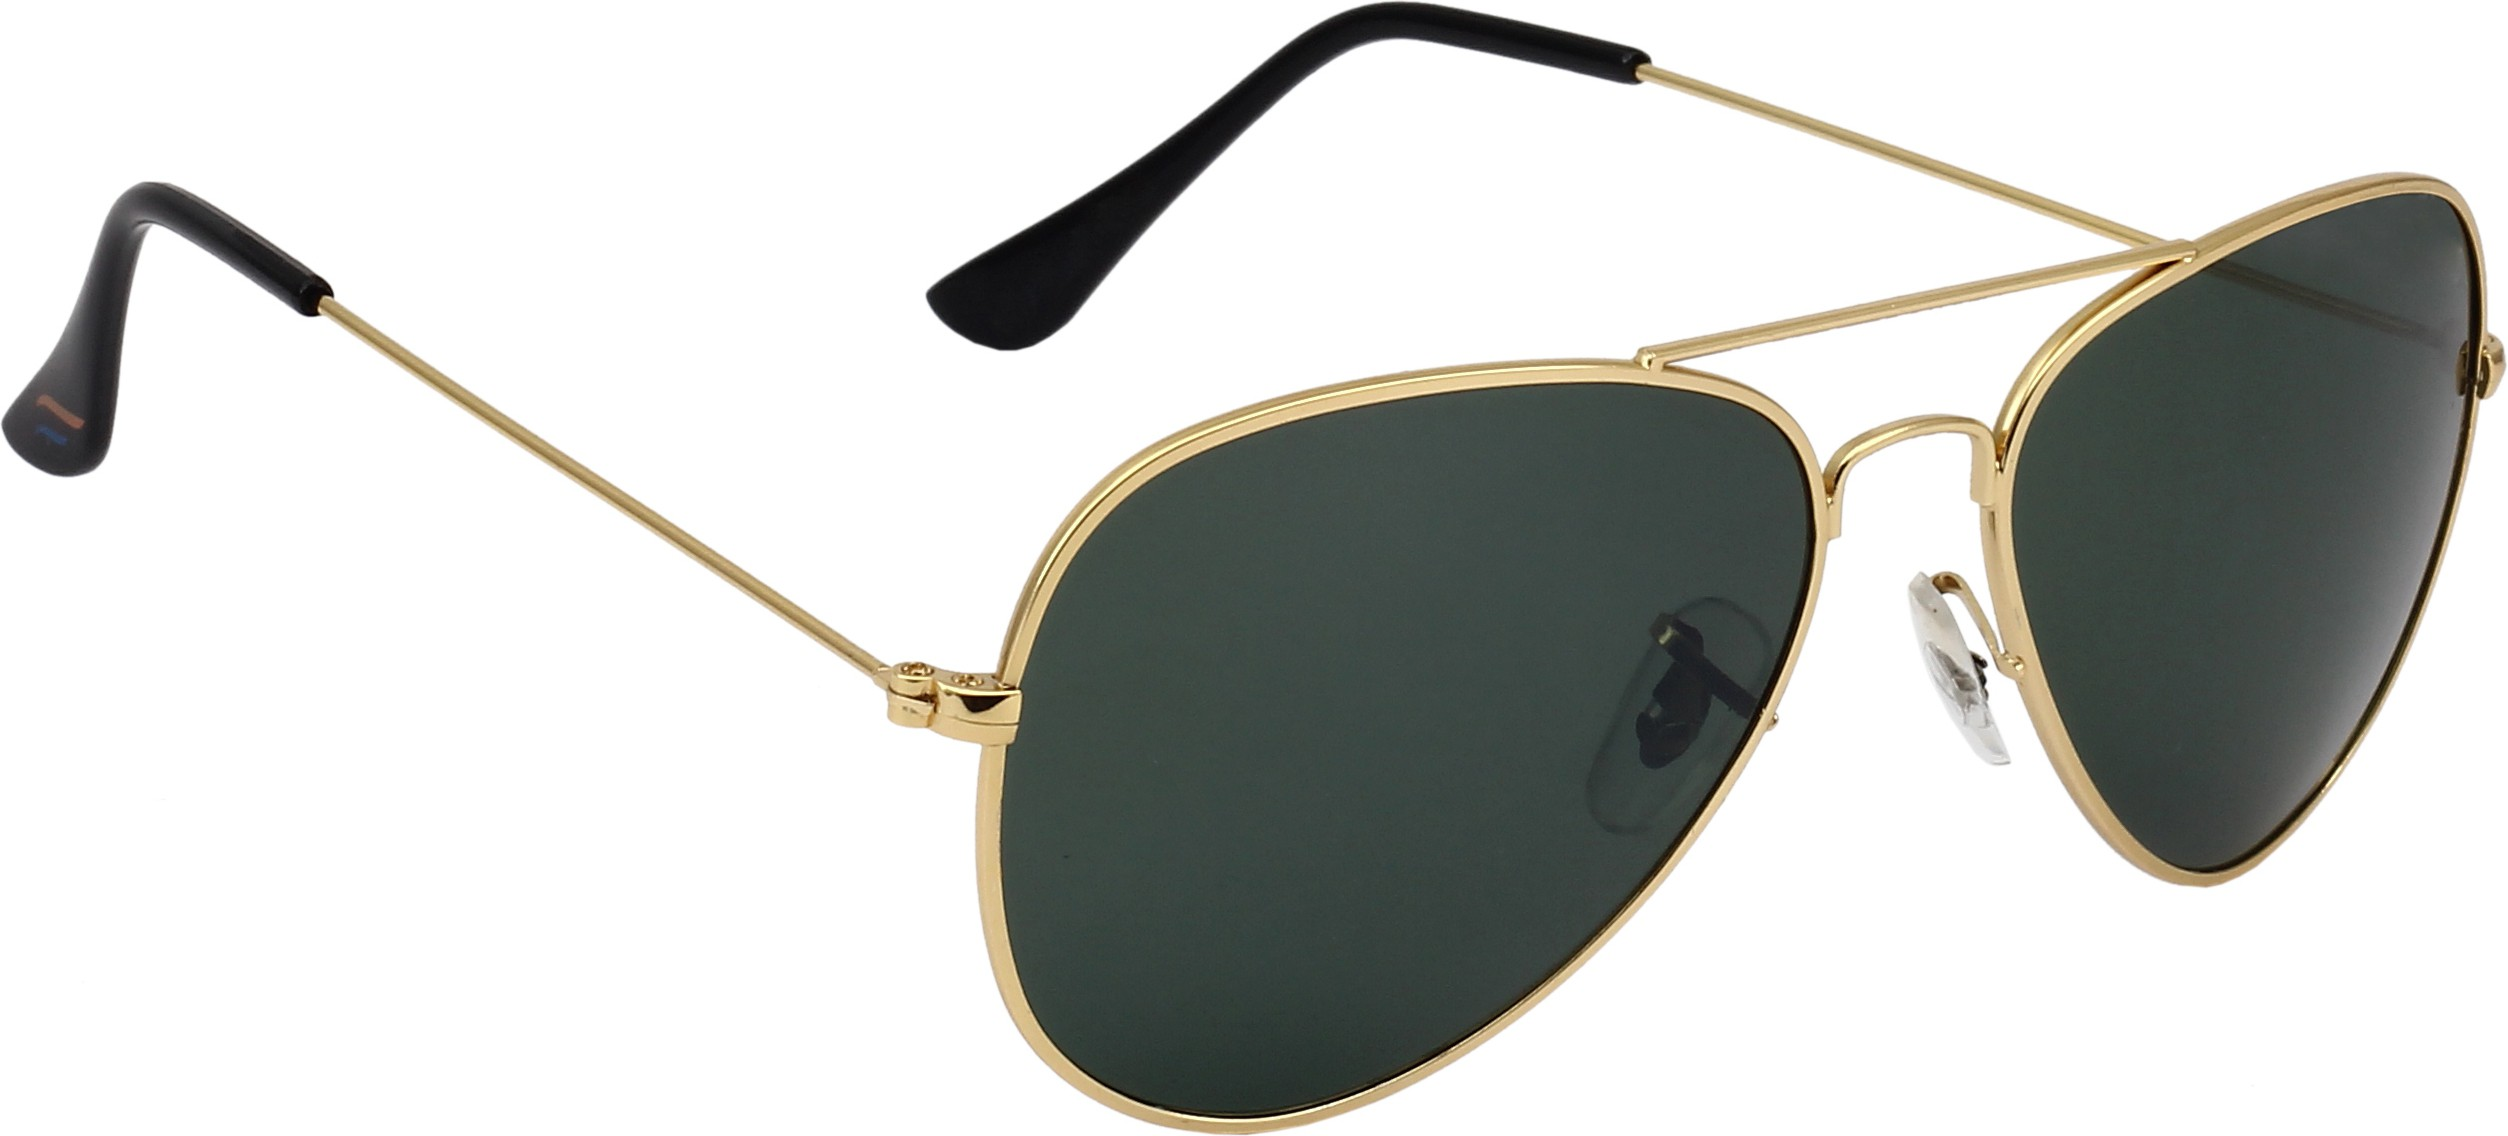 Deals - Delhi - 40-80% Off <br> Sunglasses<br> Category - sunglasses<br> Business - Flipkart.com